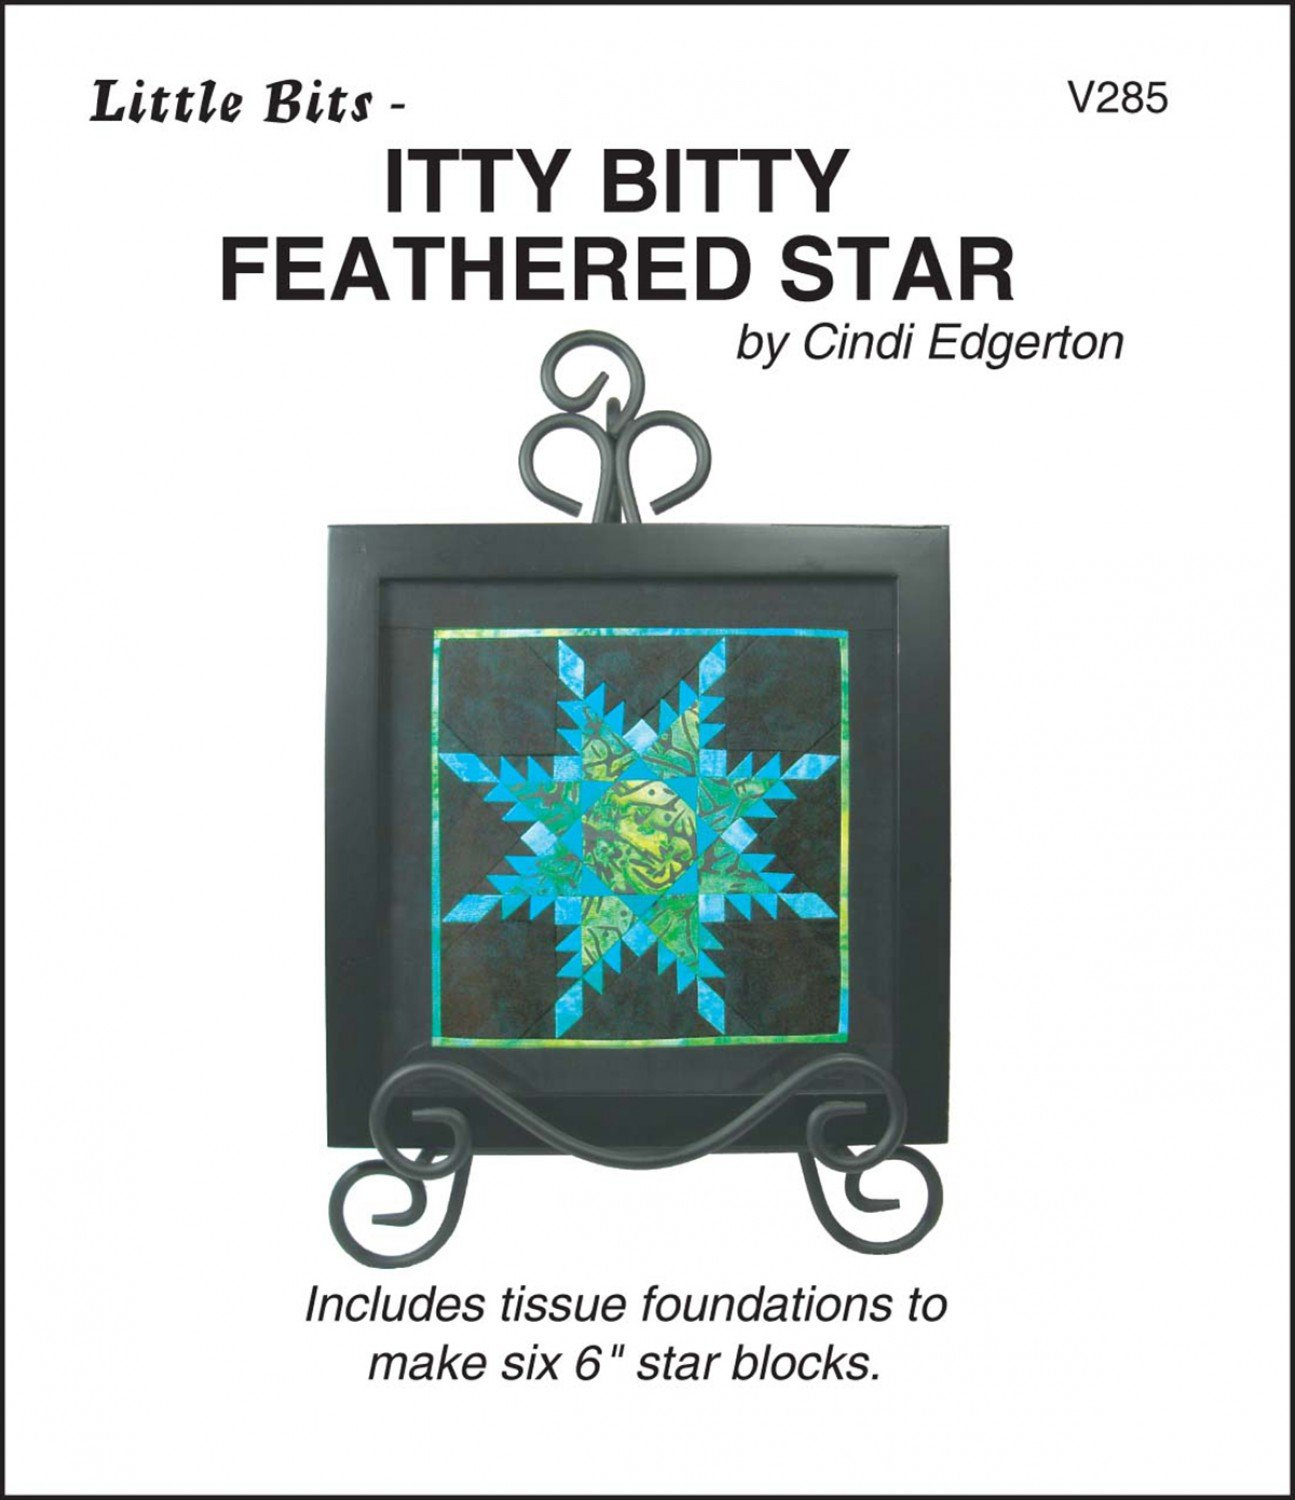 Little Bits - Itty Bitty Feathered Star